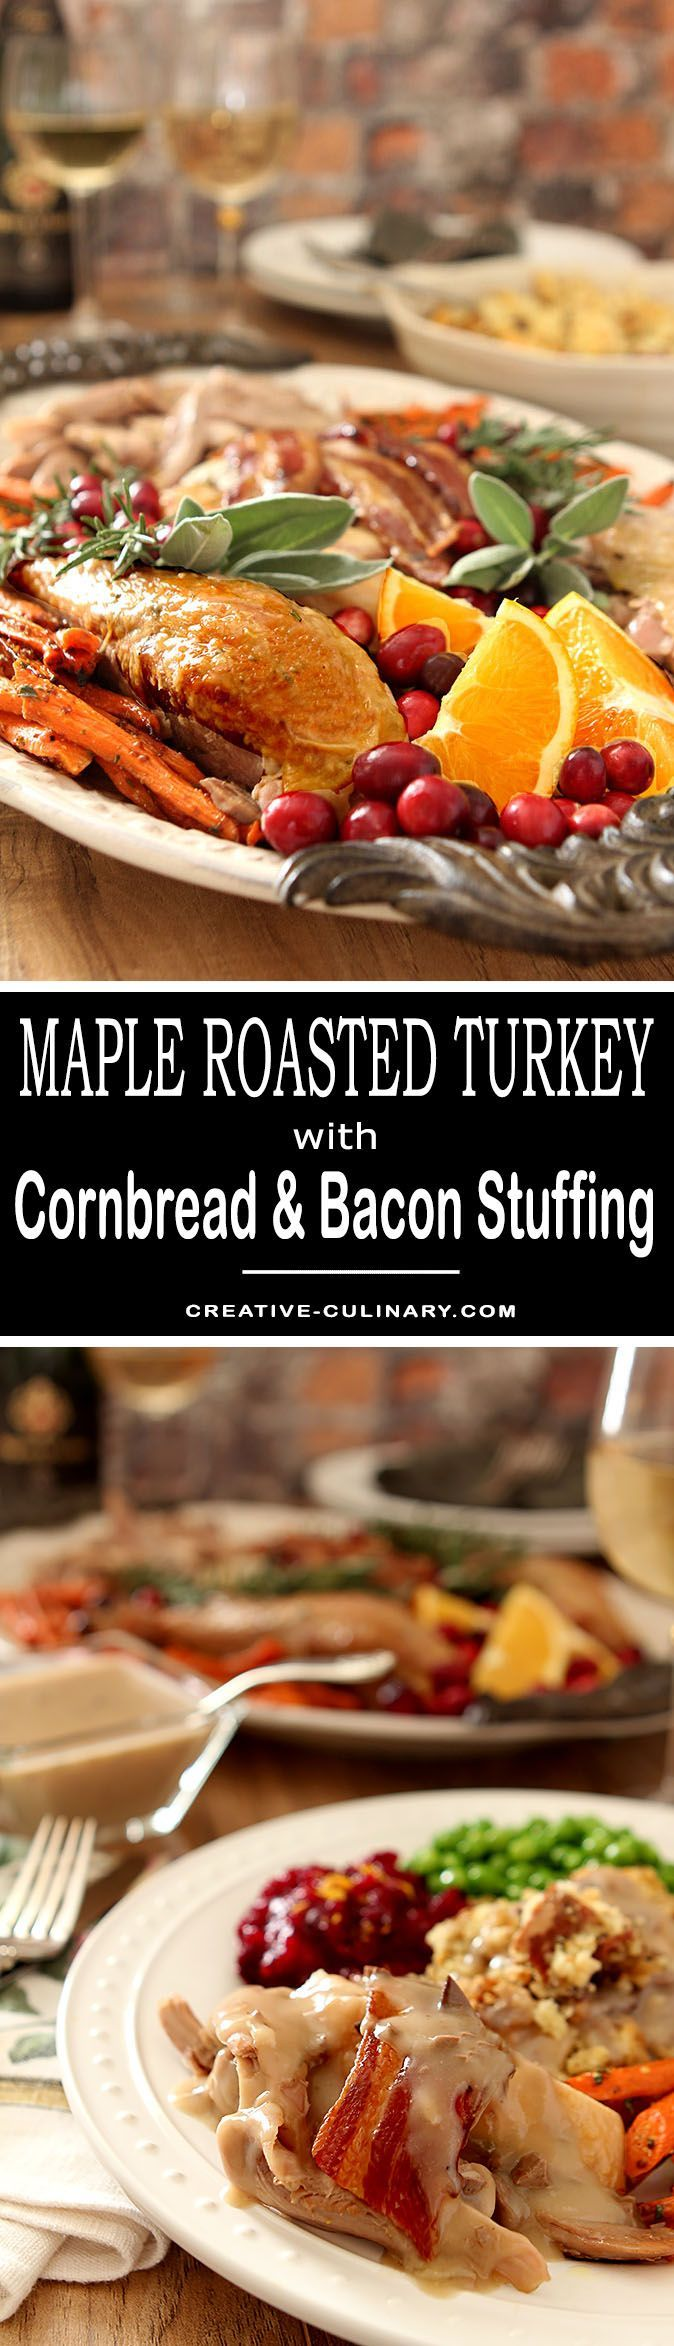 This Maple-Roasted Turkey with Sage, Bacon, and Cornbread Stuffing is quite simply the best bird I've ever had.  via @creativculinary